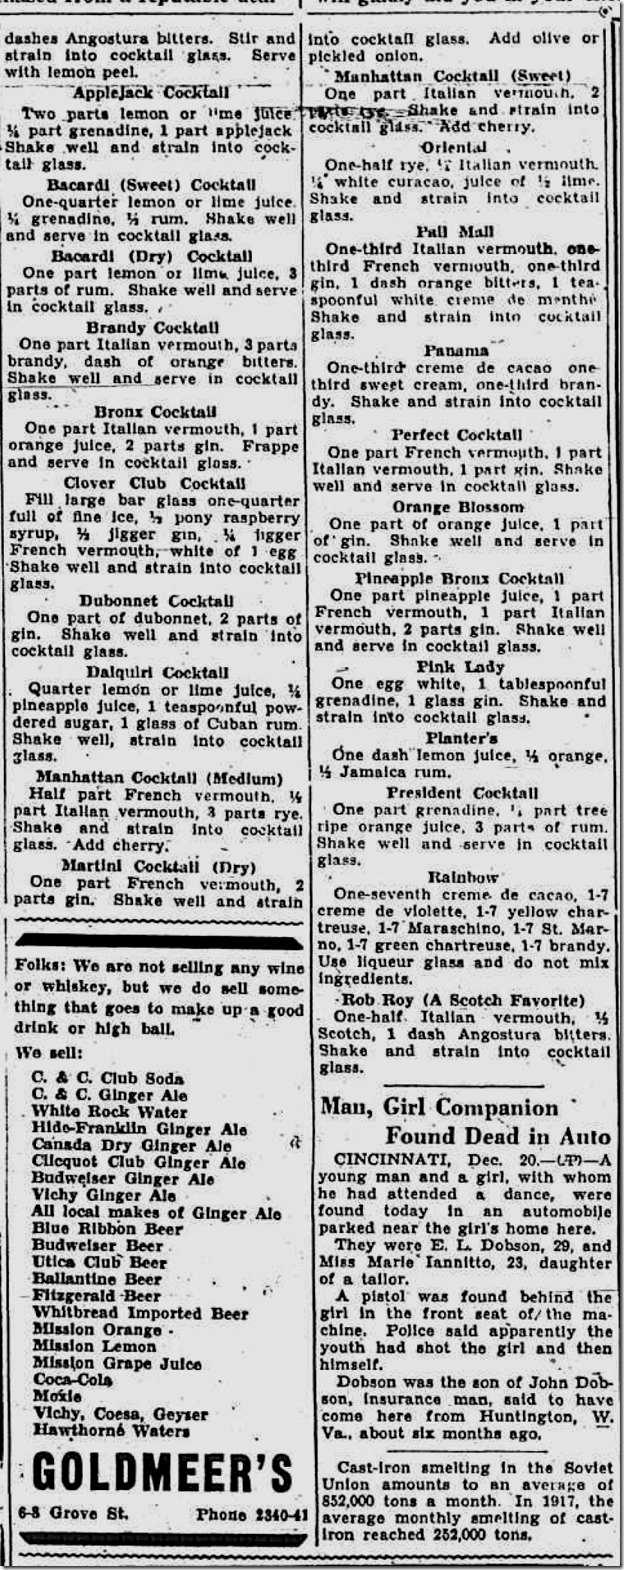 Dec. 20, 1934, Cocktail Recipes